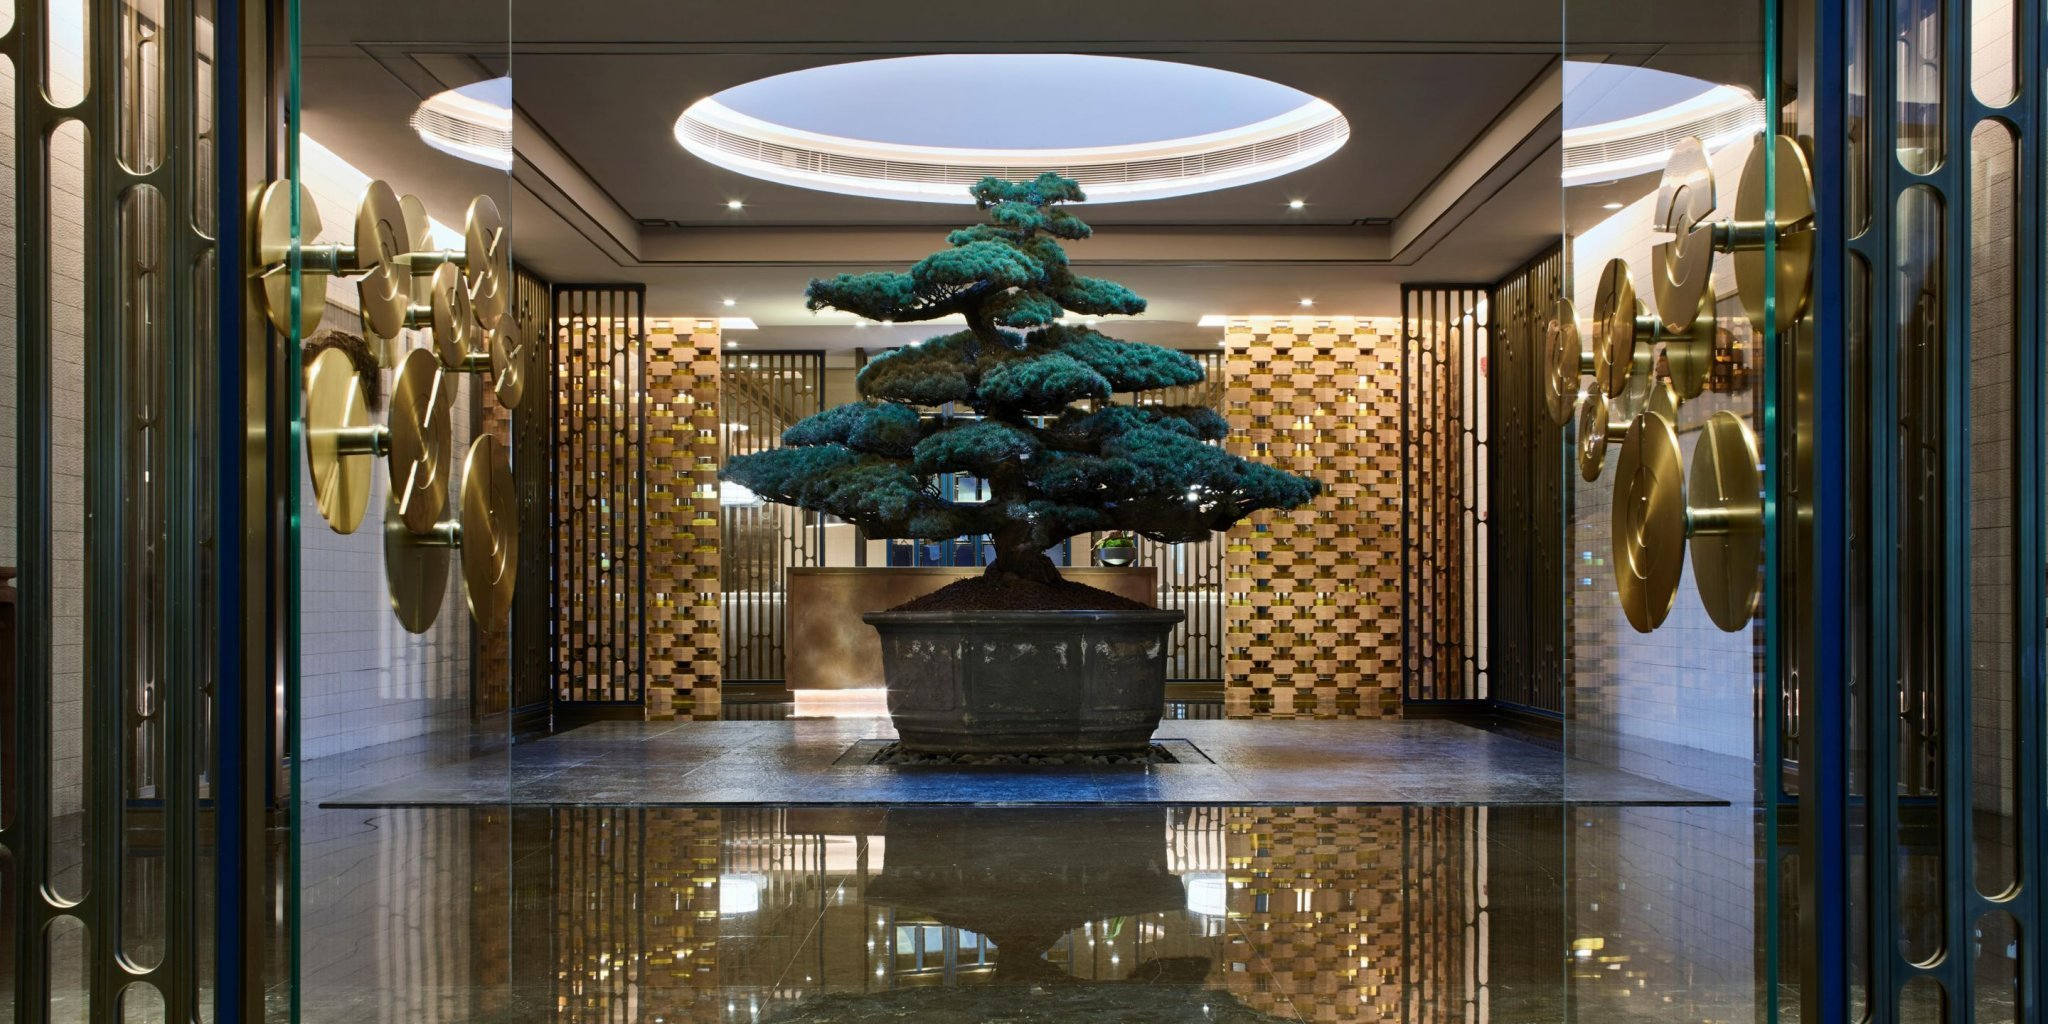 intercontinental-shanghai-5803482942-2x1